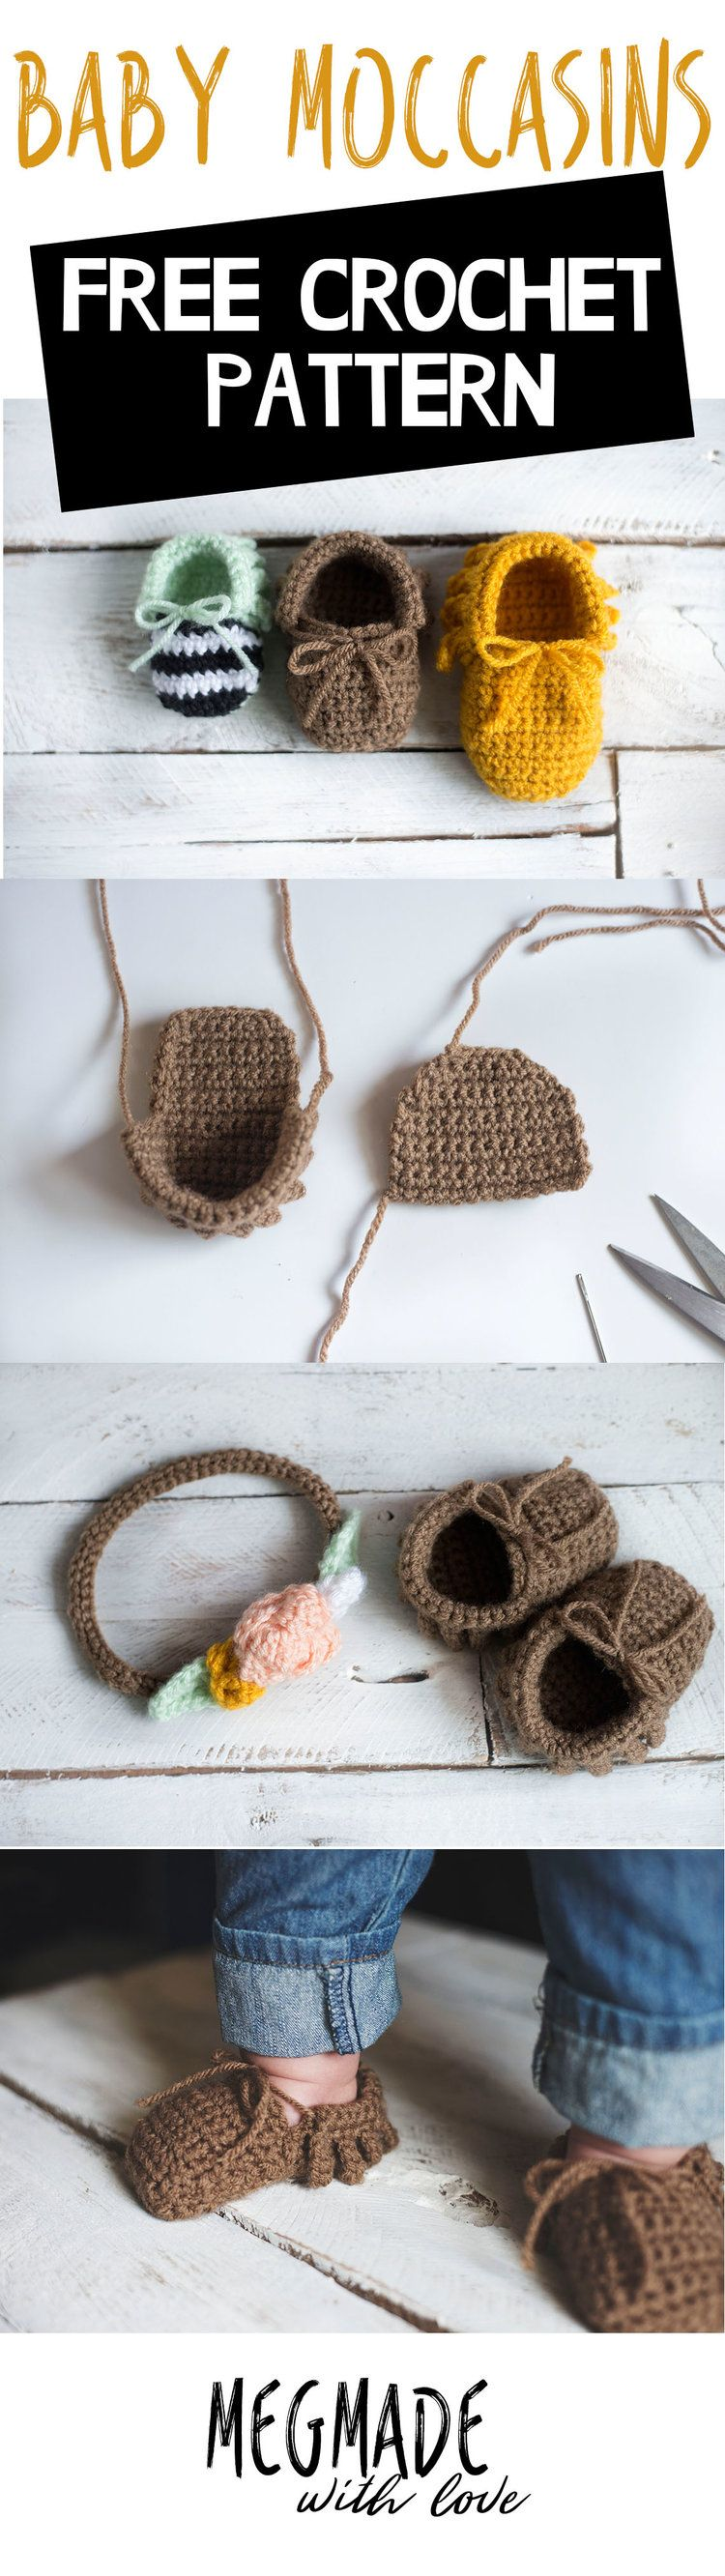 Crochet Baby Moccasins Pattern — Megmade with Love | Red Heart ...